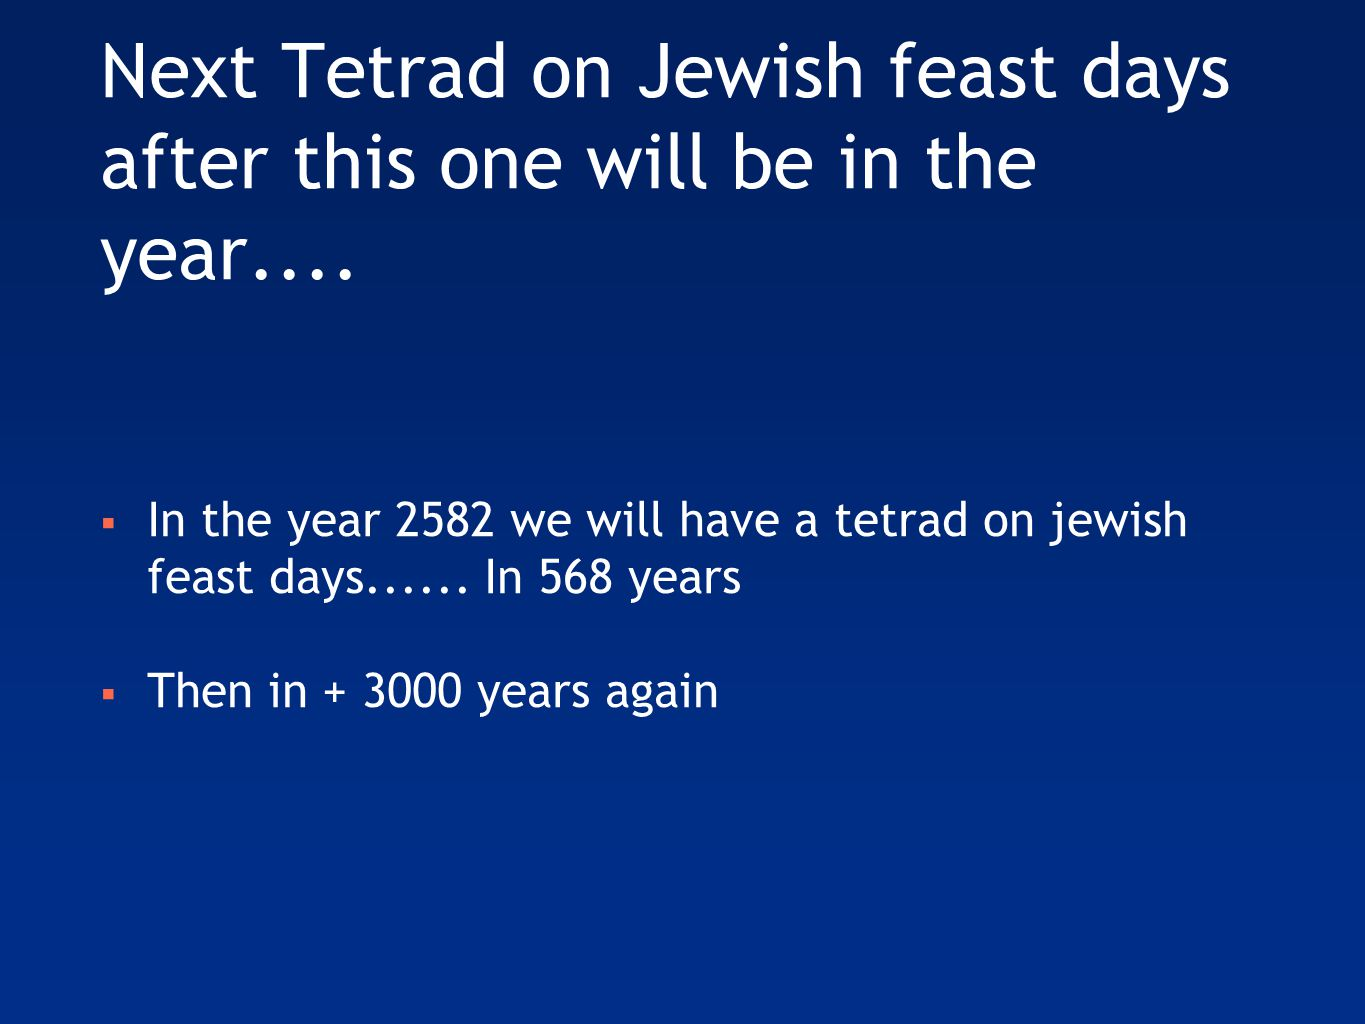 Next Tetrad on Jewish feast days after this one will be in the year....